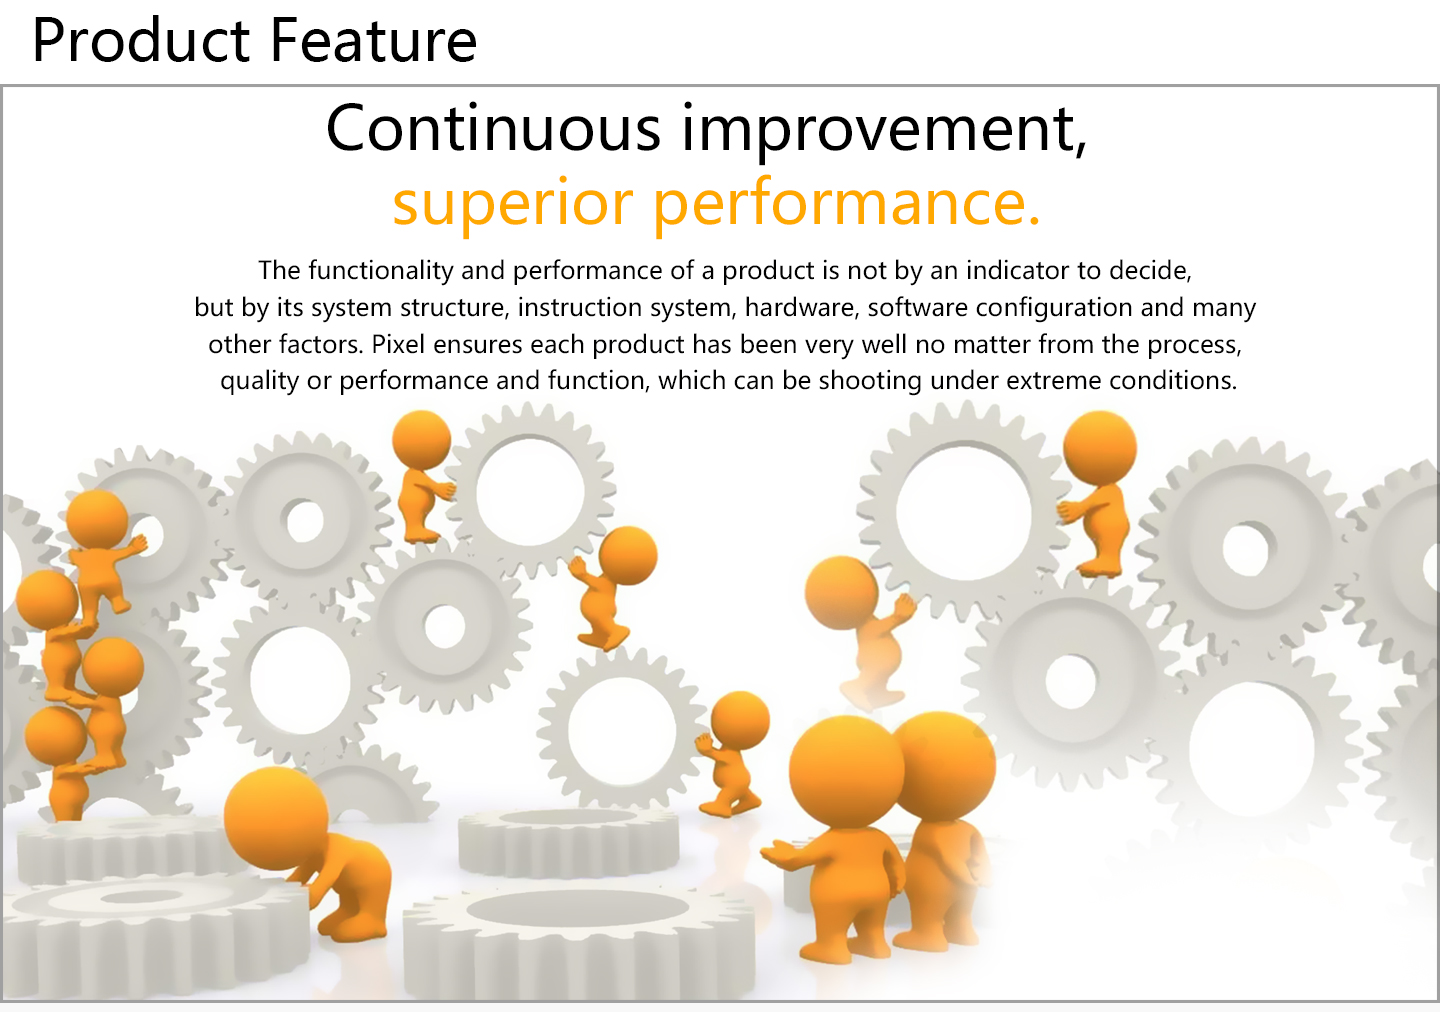 Continuous improvement, superior performance